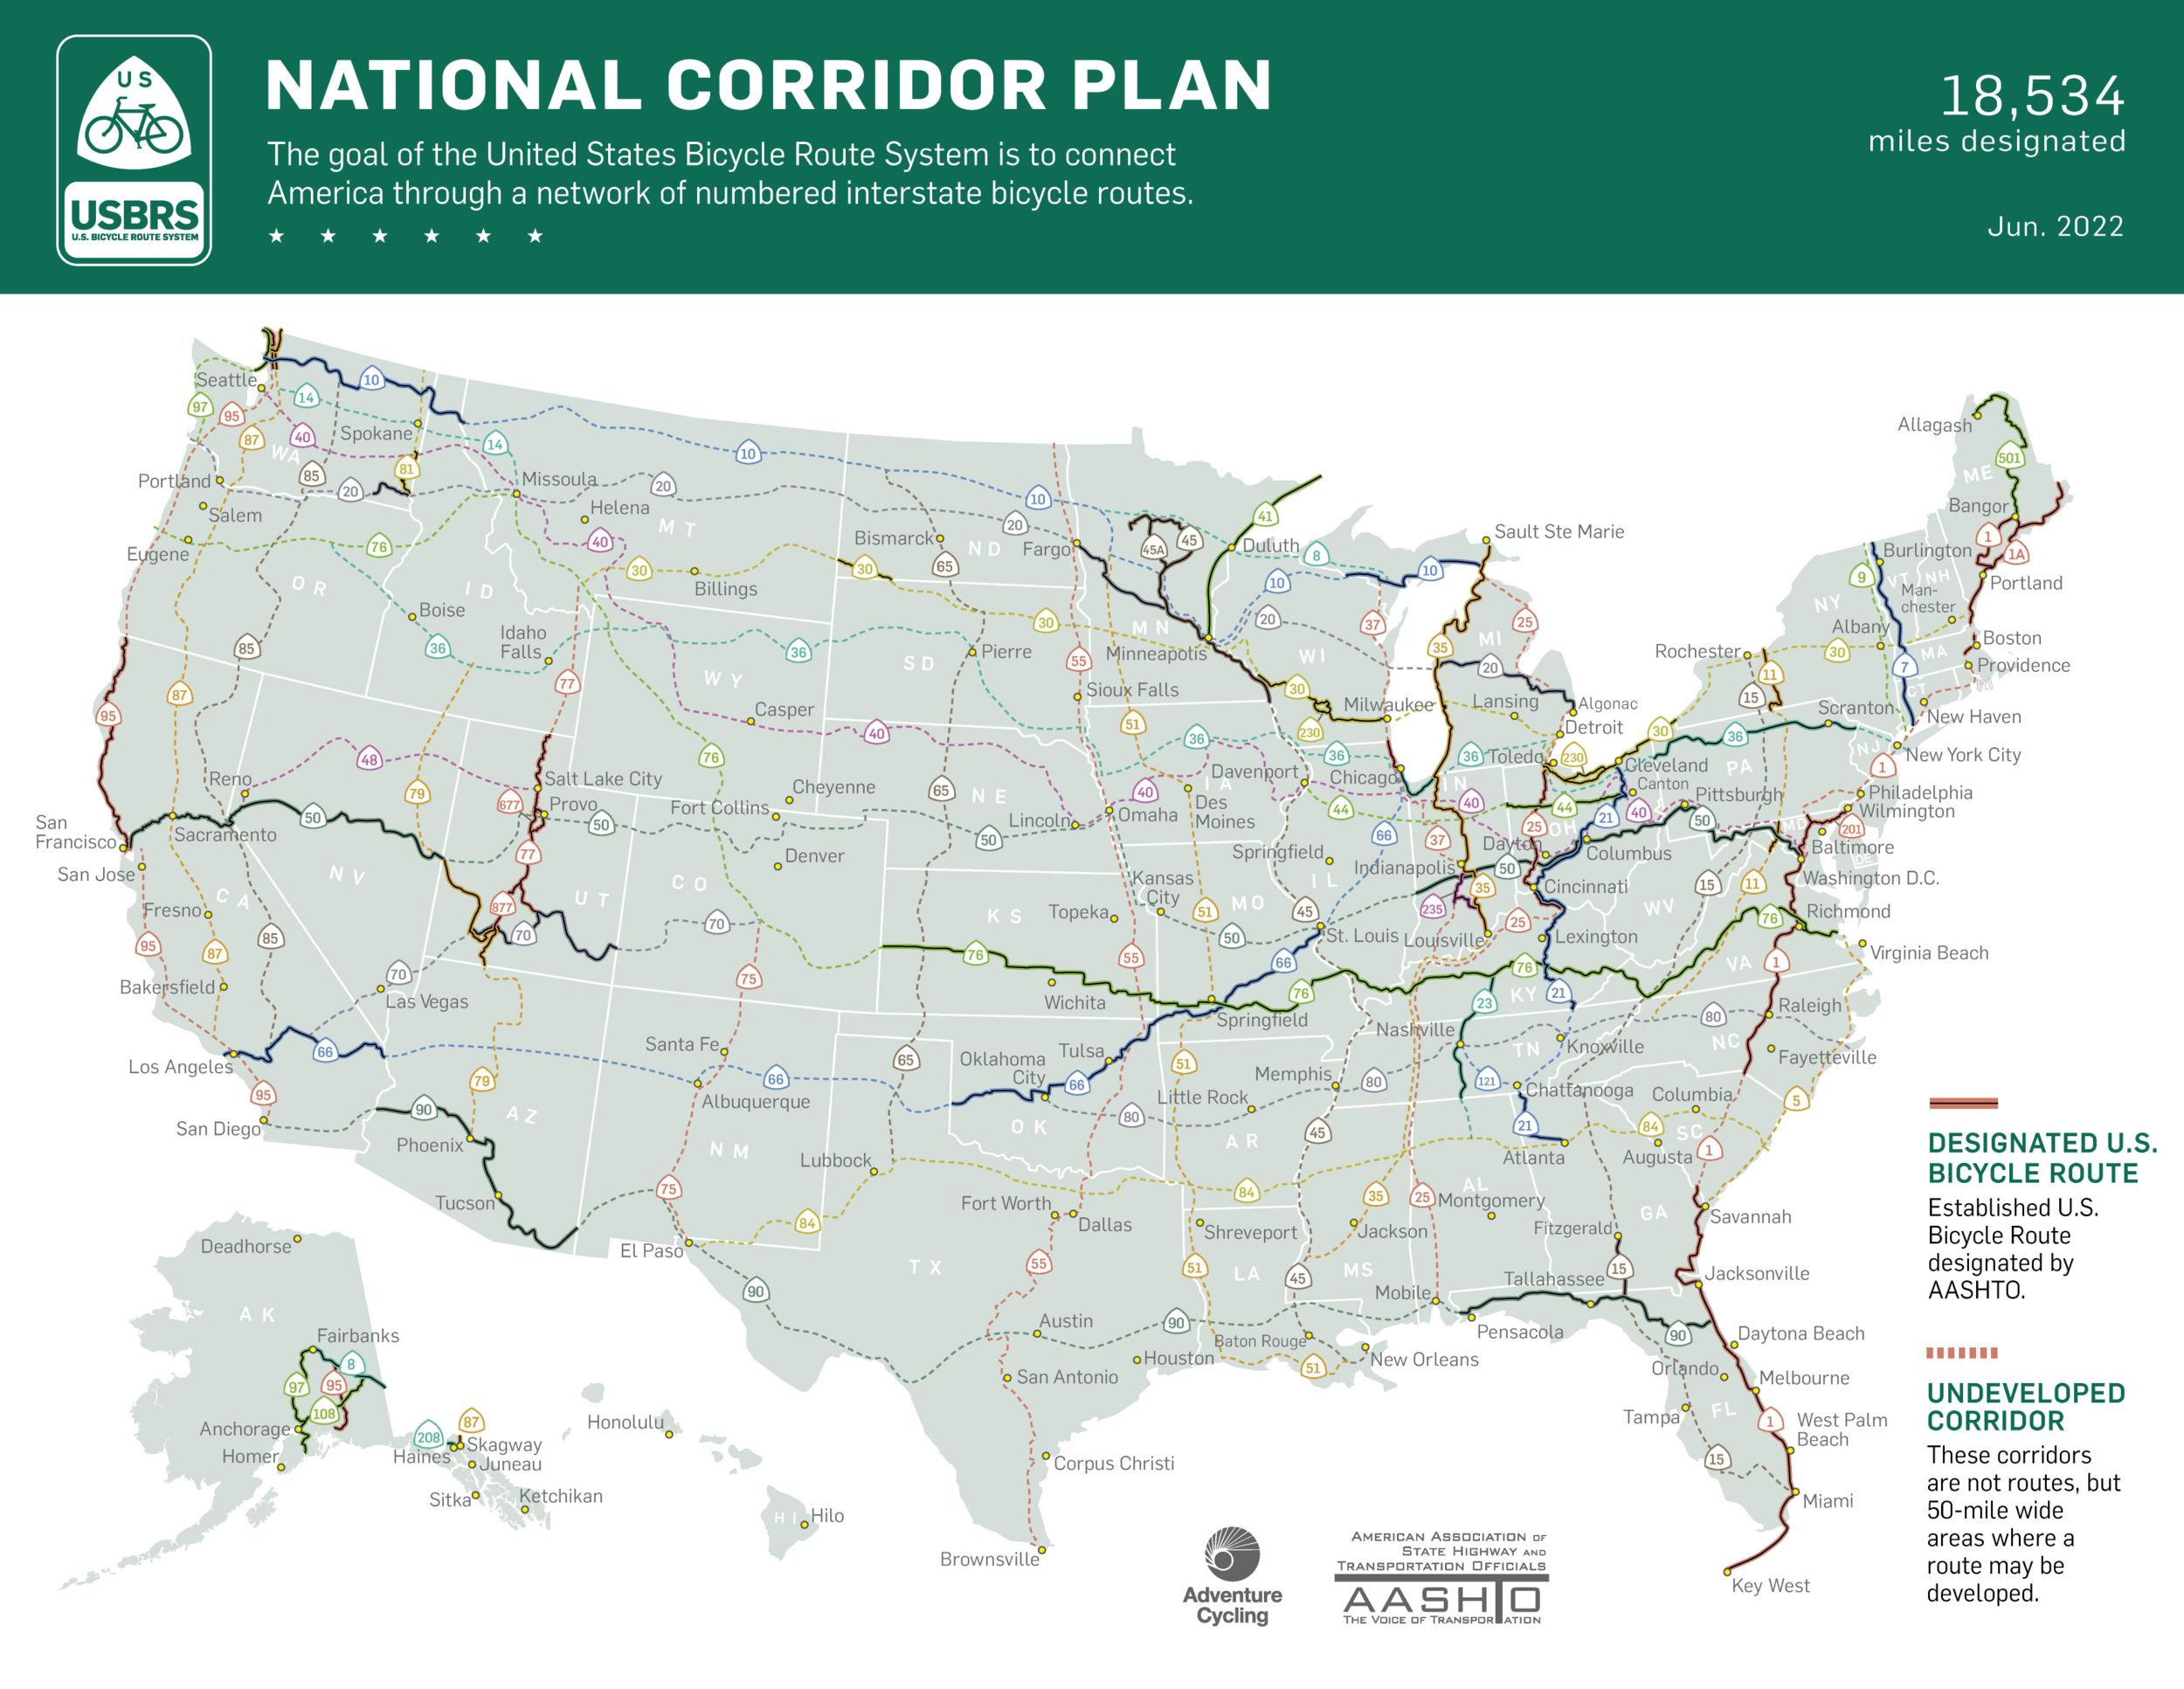 national corridor plan u s bicycle route system adventure